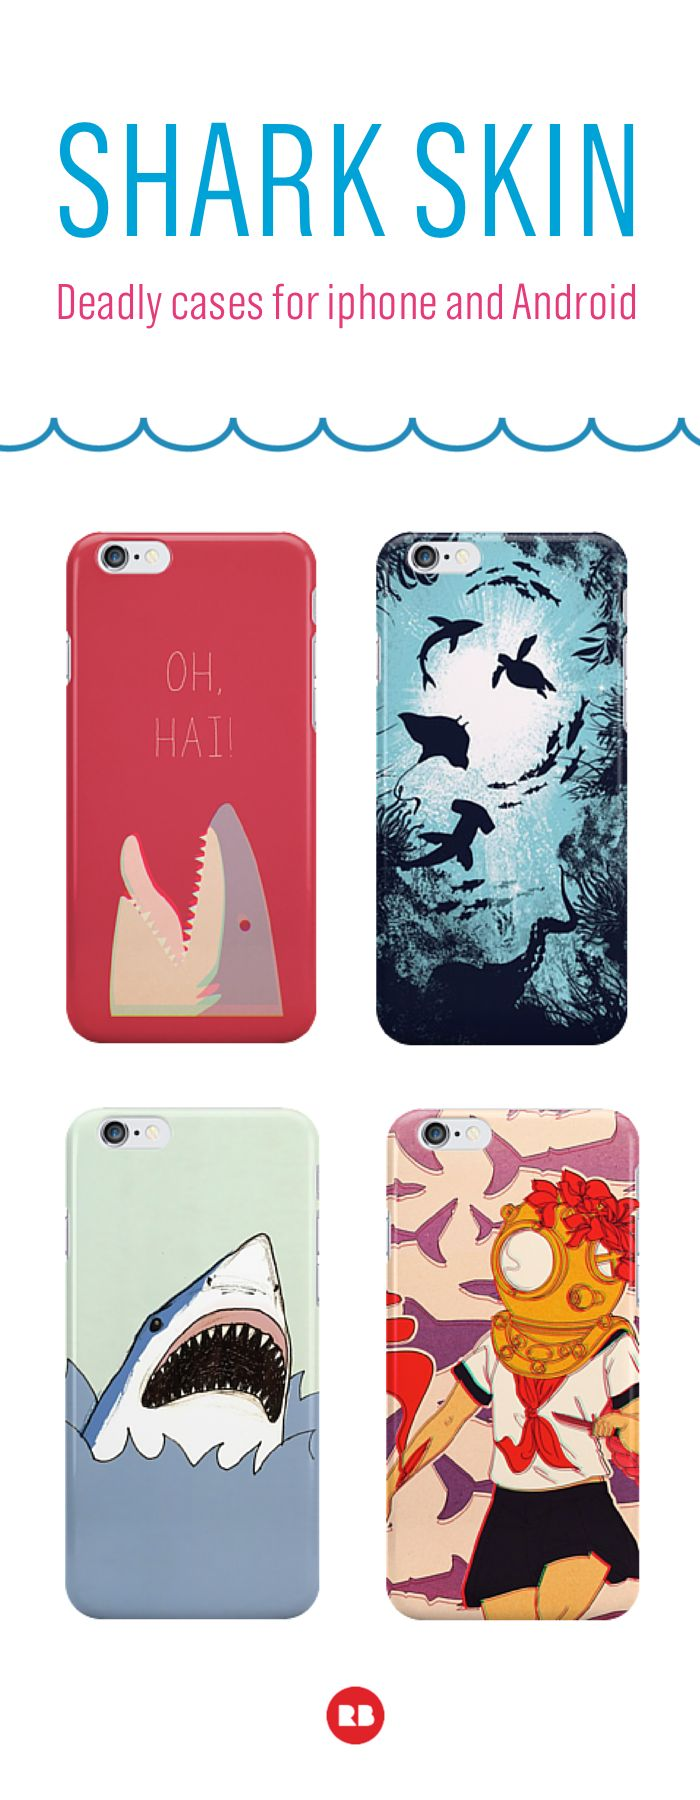 Cases...they're sort of like a shark cage for your phone. Keep your device safe from bloody waters with a shark-inspired case from Redbubble. Find thousands of deadly designs all made by artists. #sharkweek